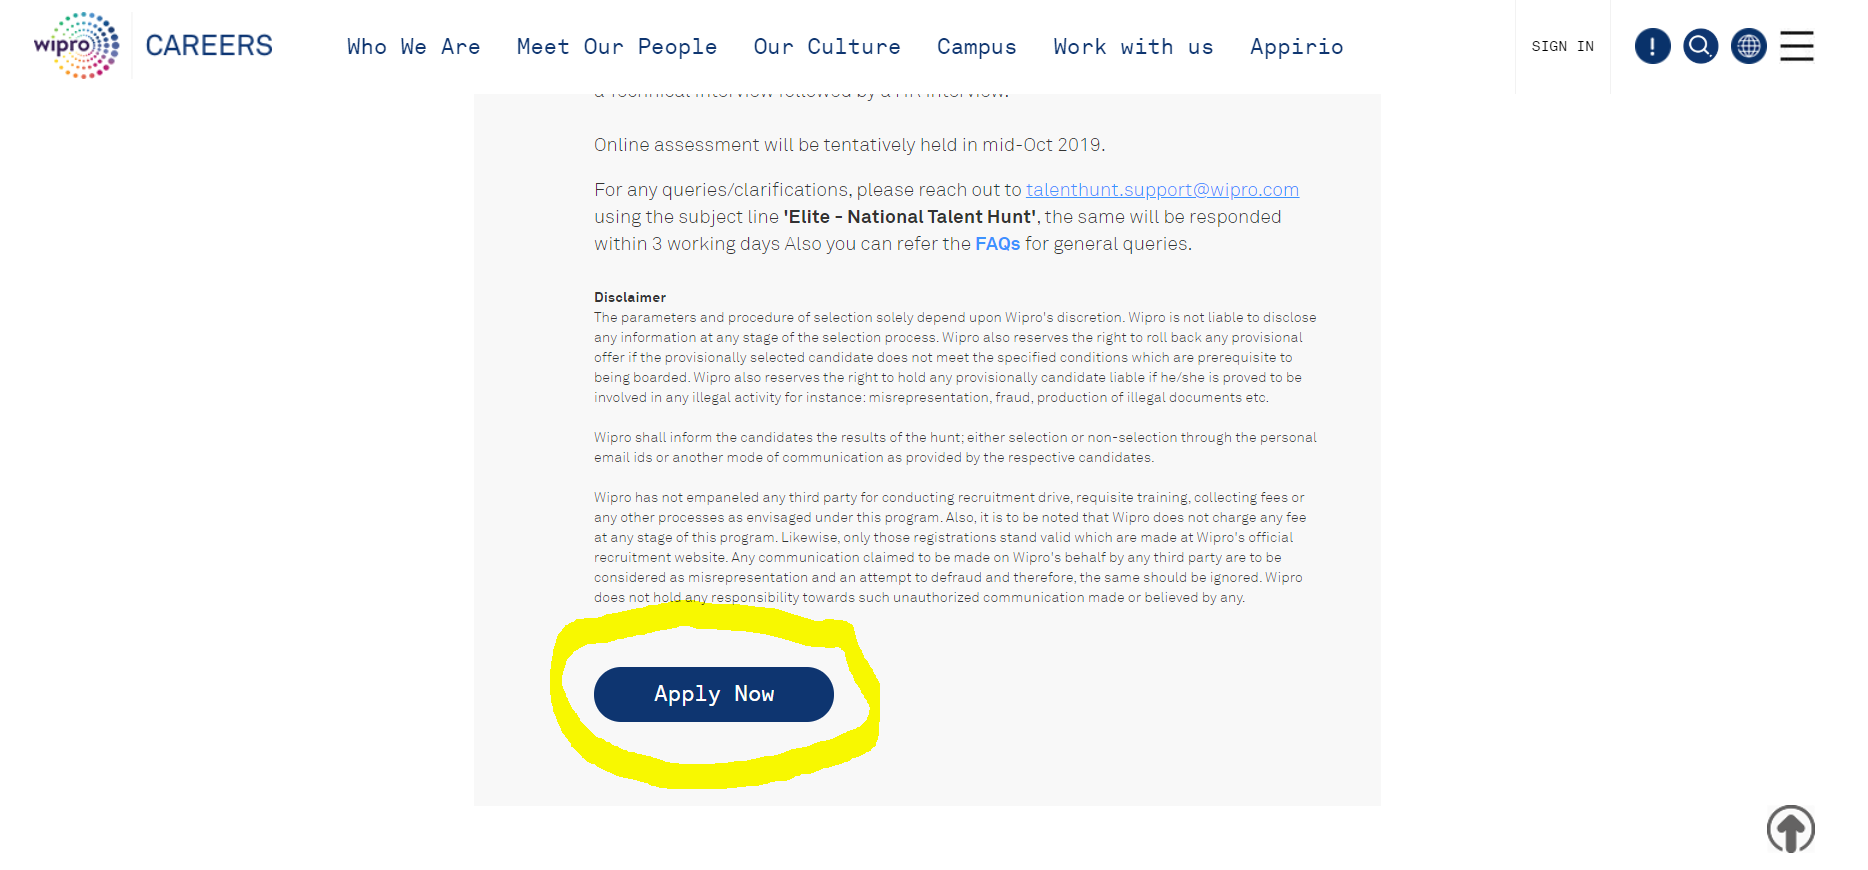 wipro national qualifier test application process